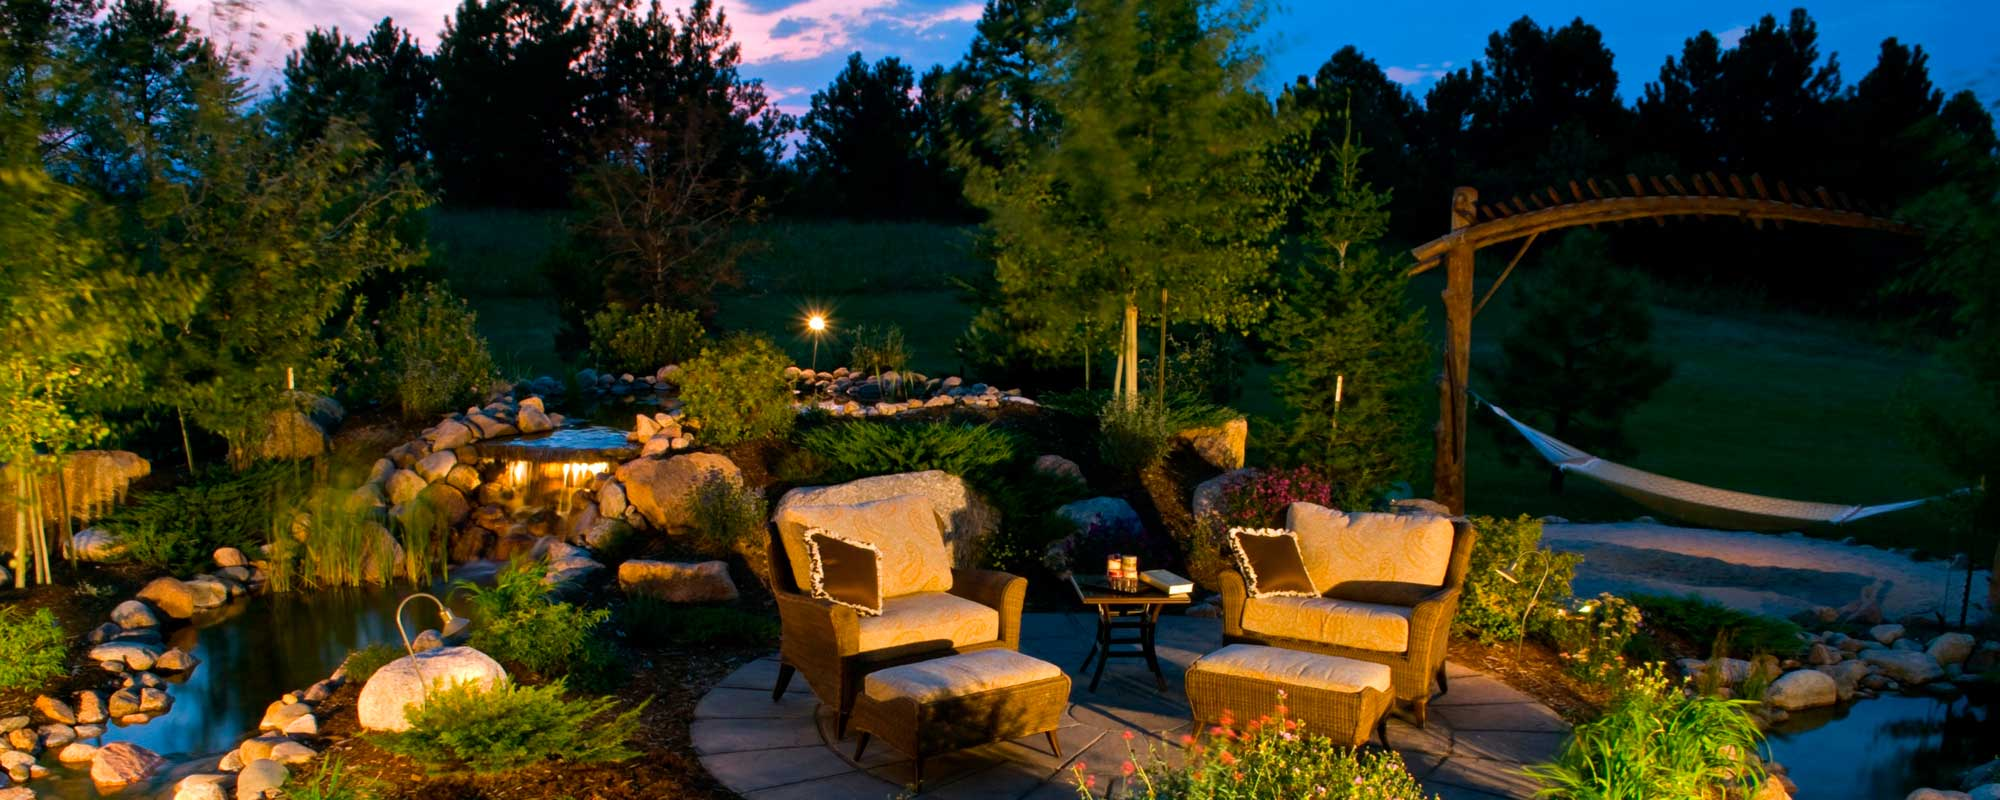 Landscaping Colorado Springs